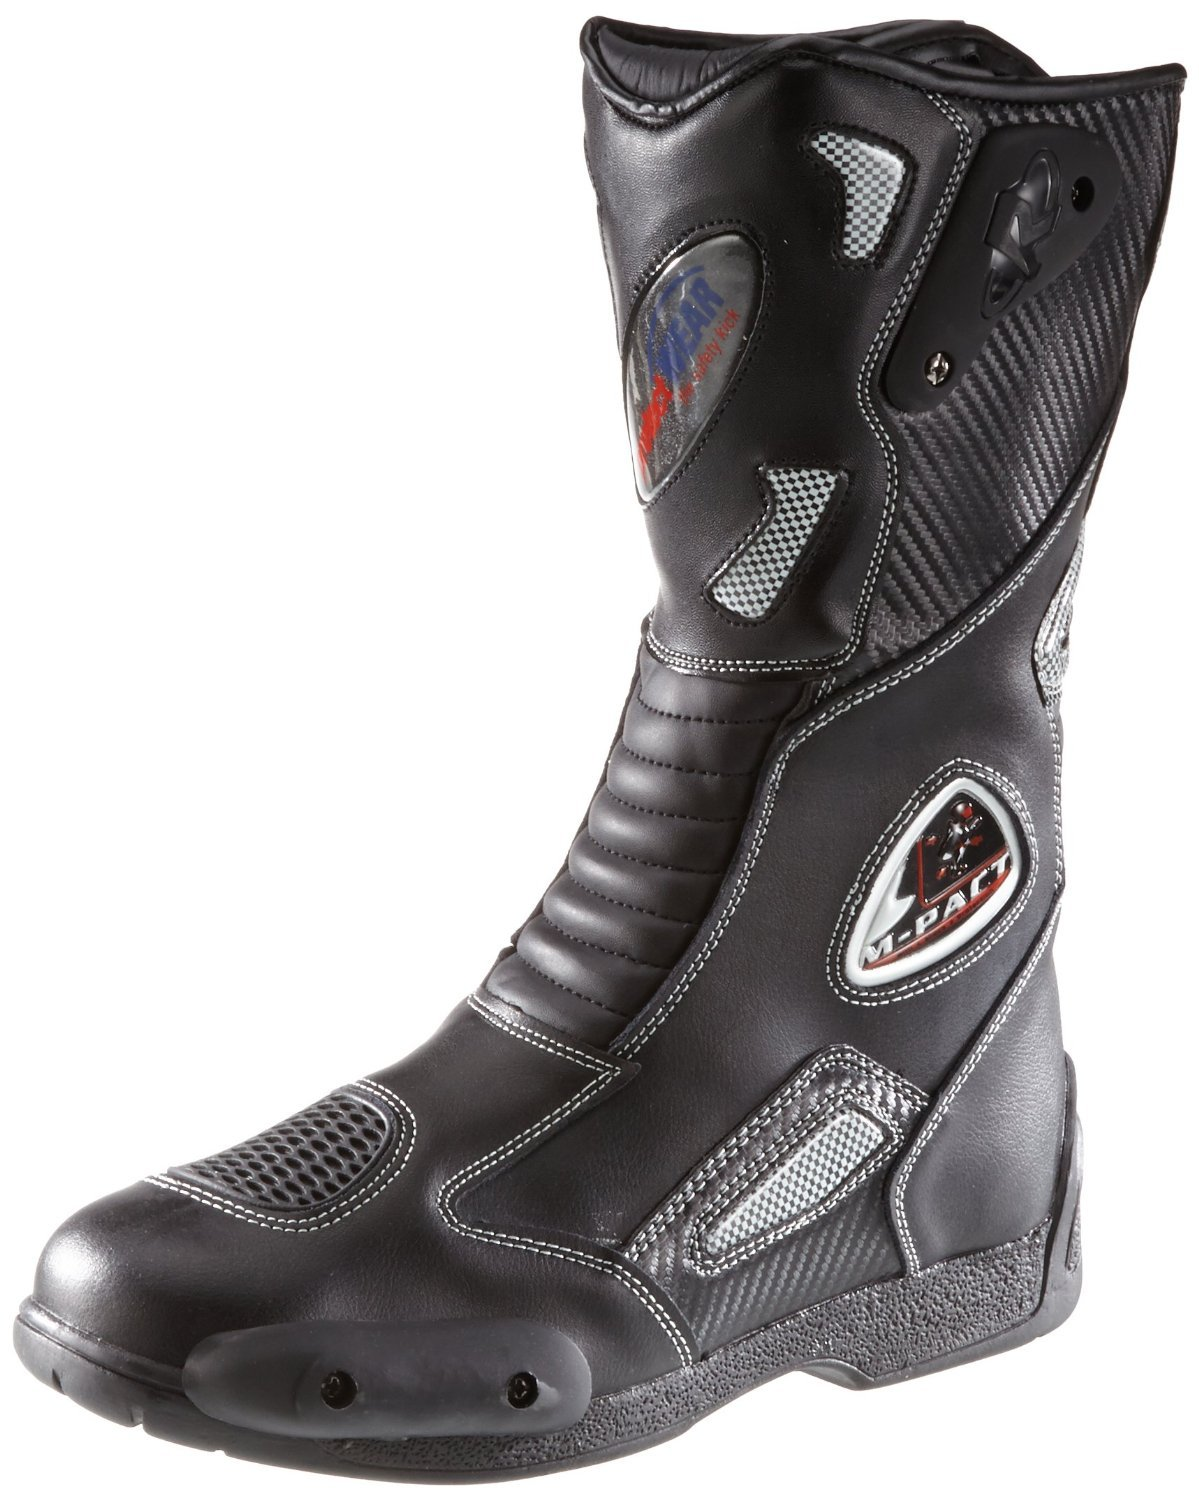 Protectwear Motorcycle boots Sport SB-03203-44,  Size 44, Black